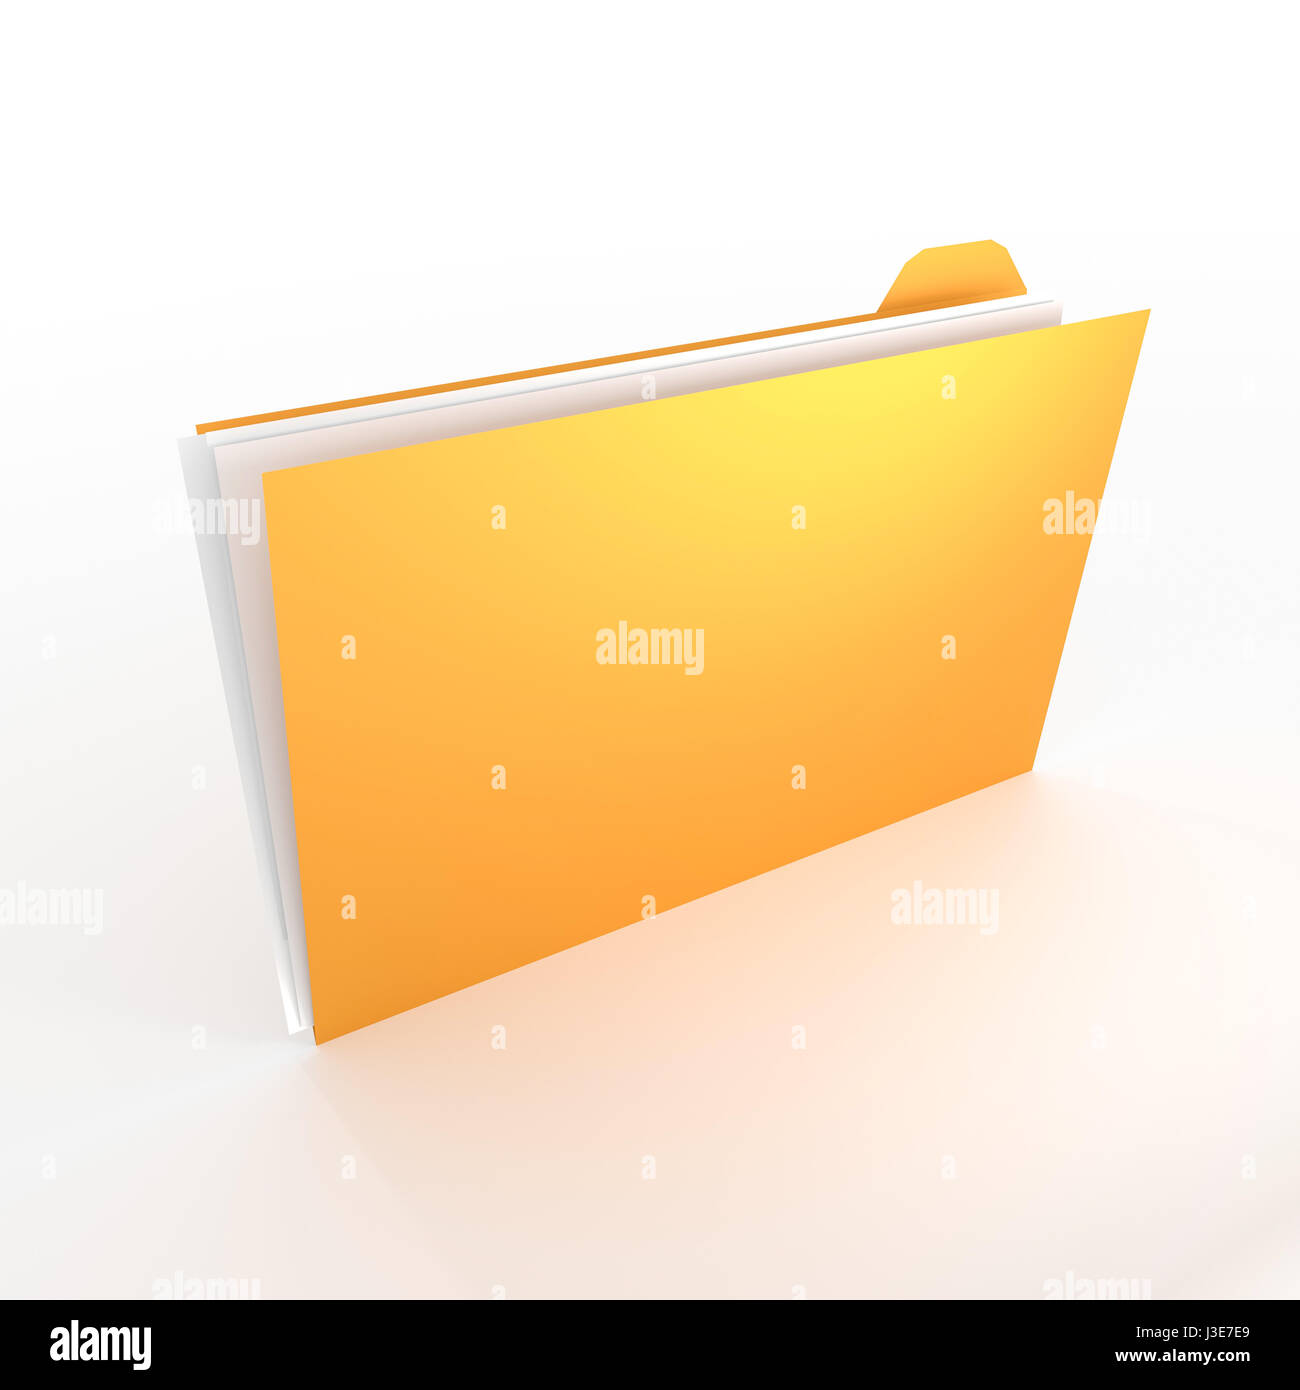 3D folder concept - great for topics like office, documents, data, research etc. - Stock Image